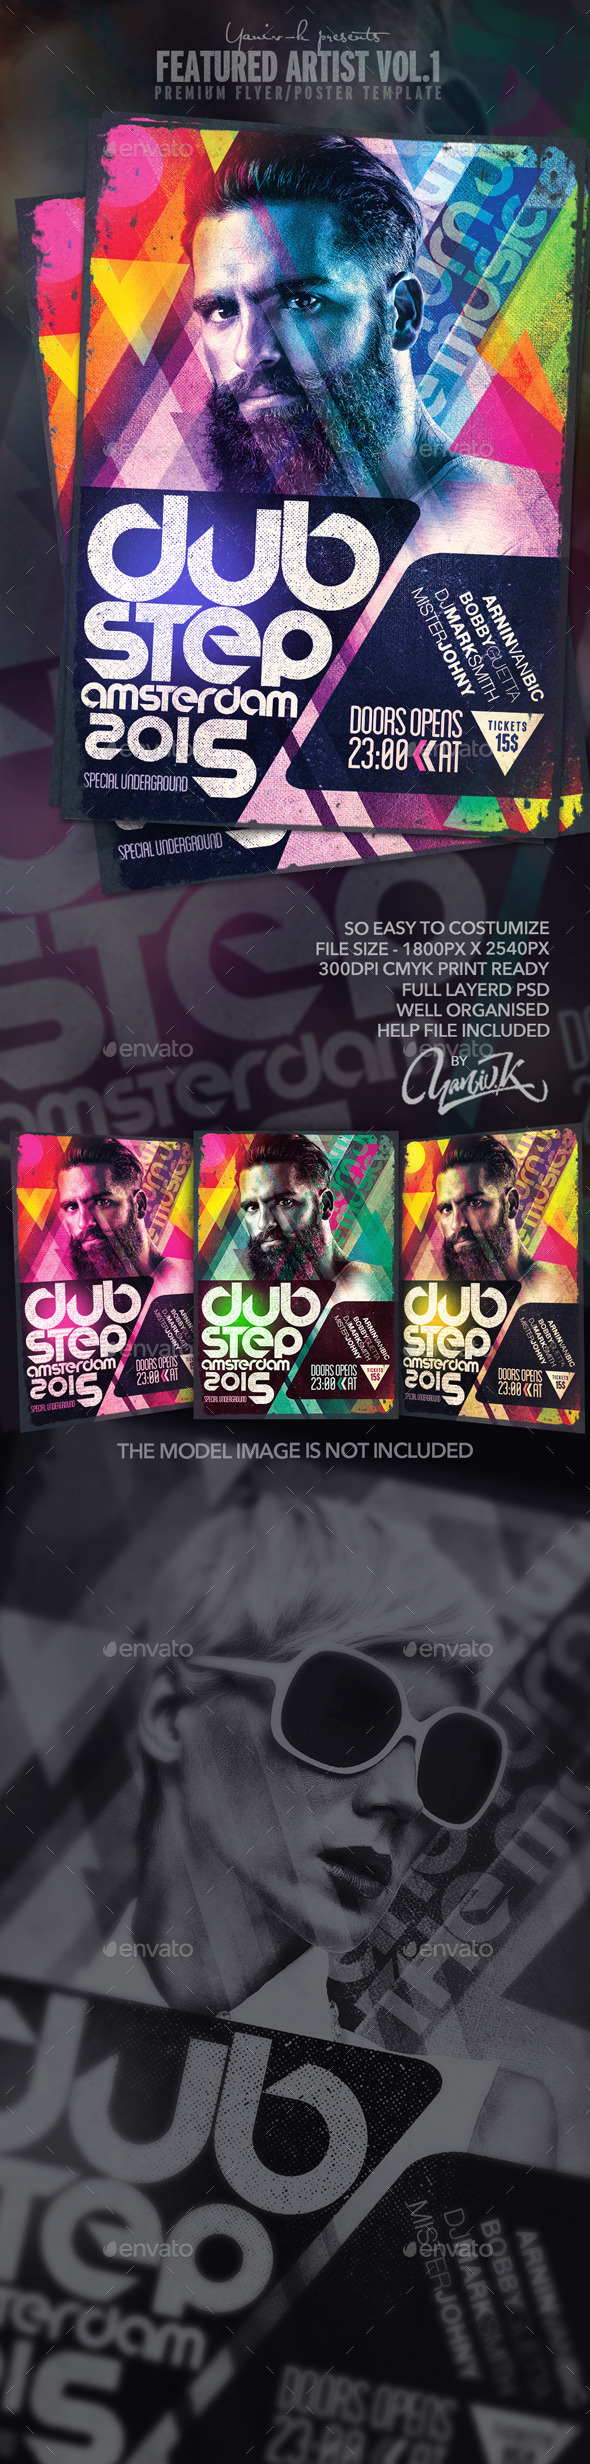 Featured Artist Vol.1 - Electro Dj - Flyers Print Templates